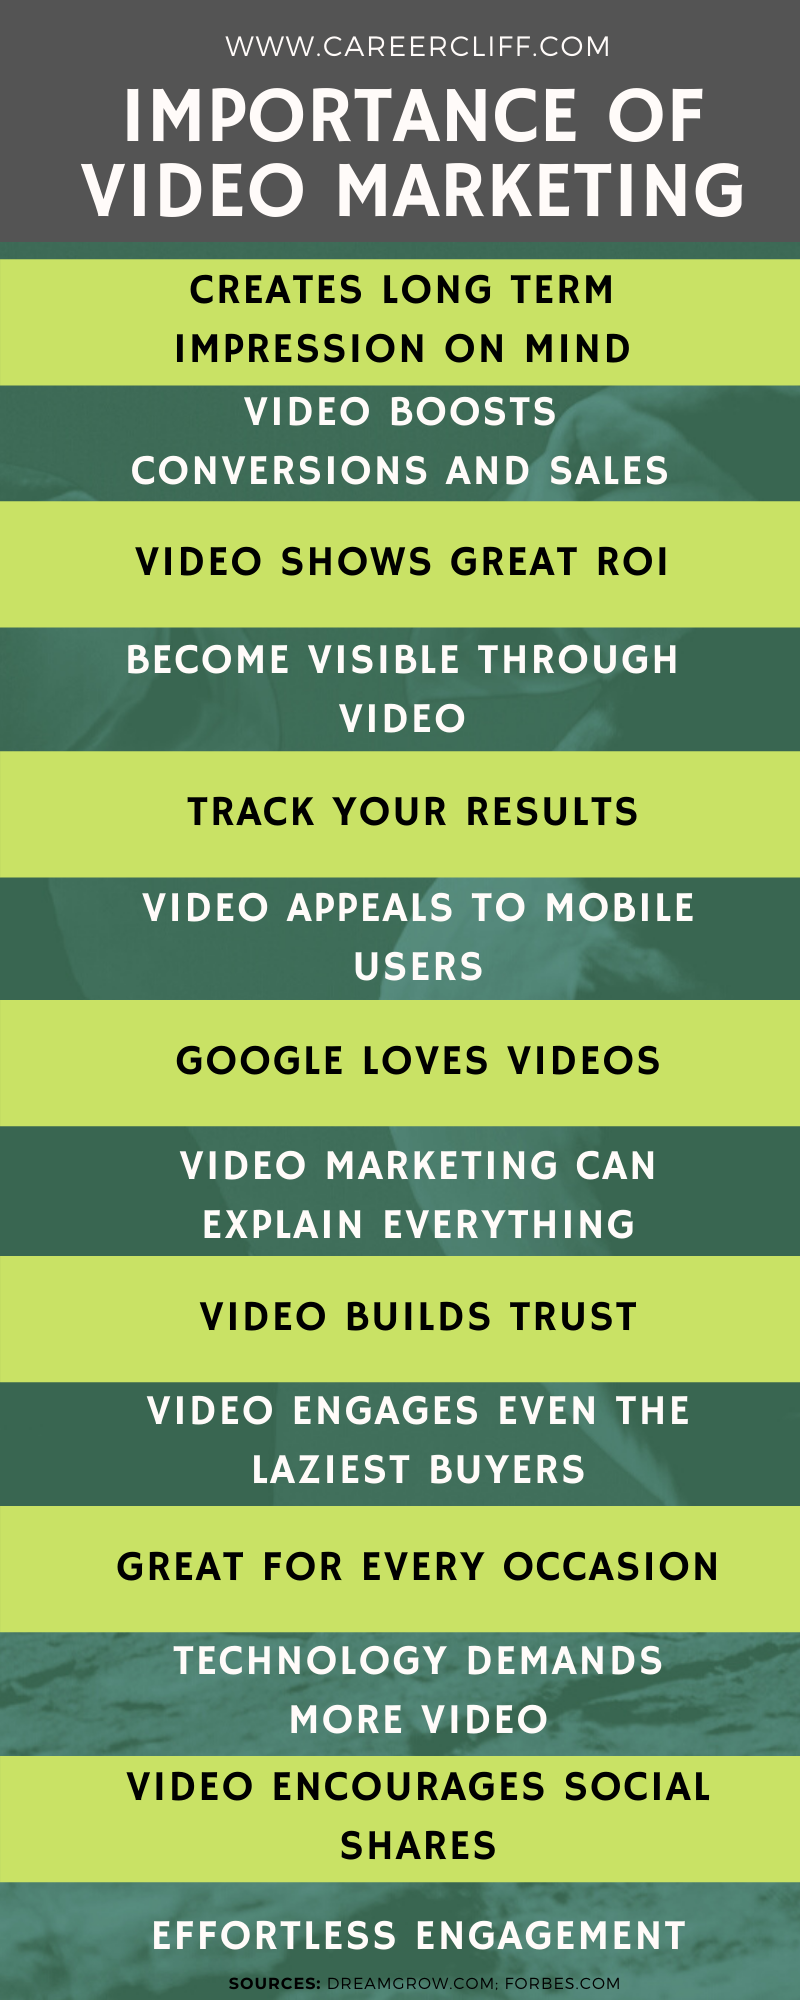 importance of video marketing importance of visual content the importance of video marketing